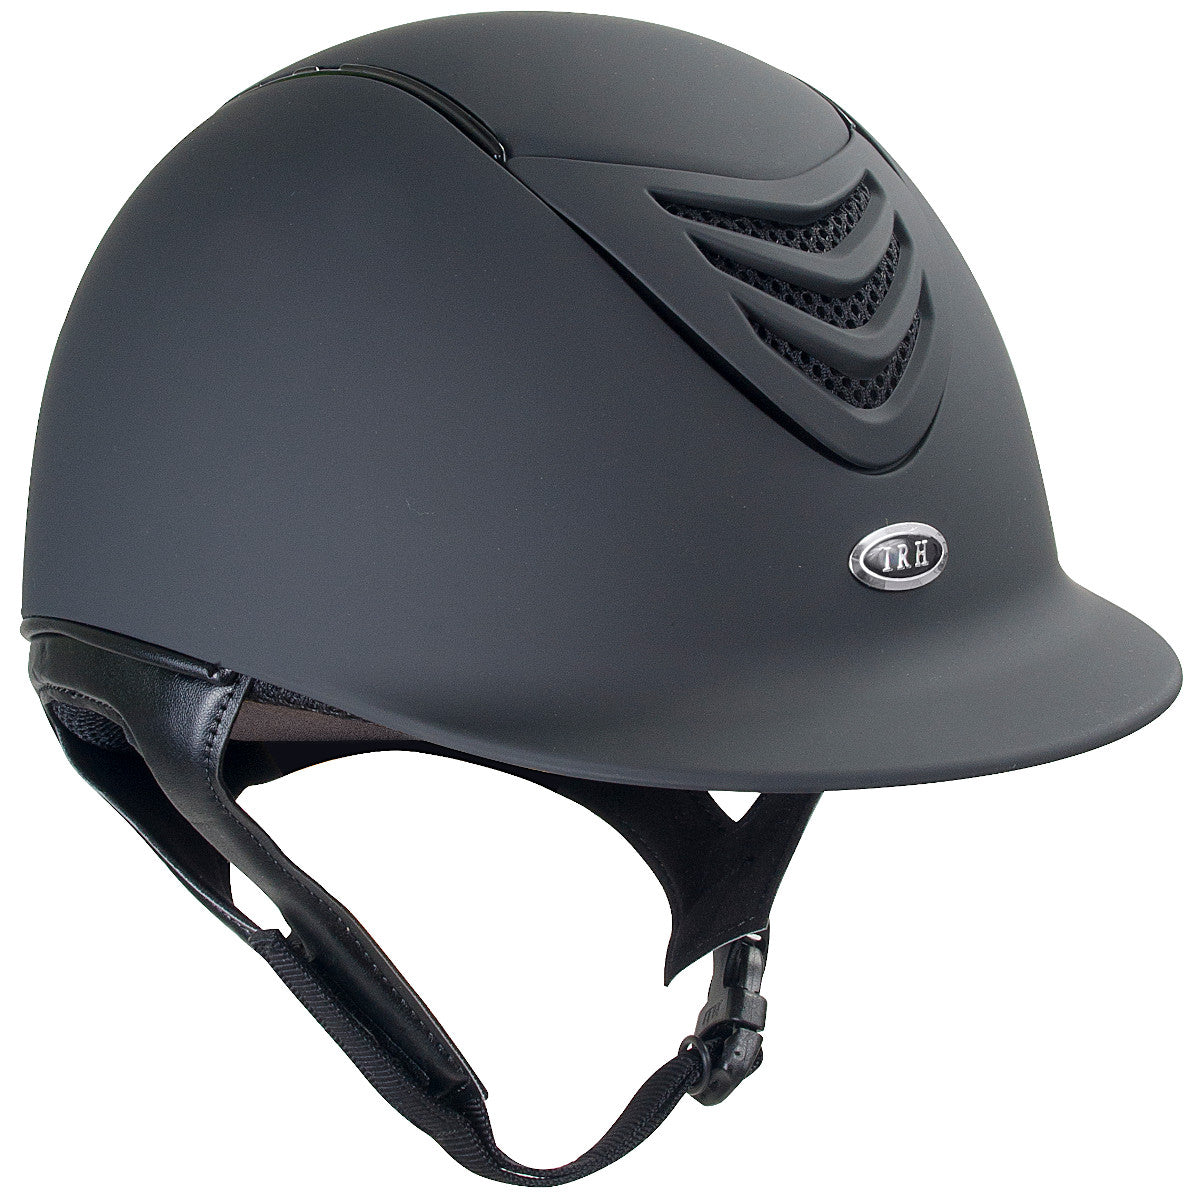 IRH 4G Matte Black Riding Helmet